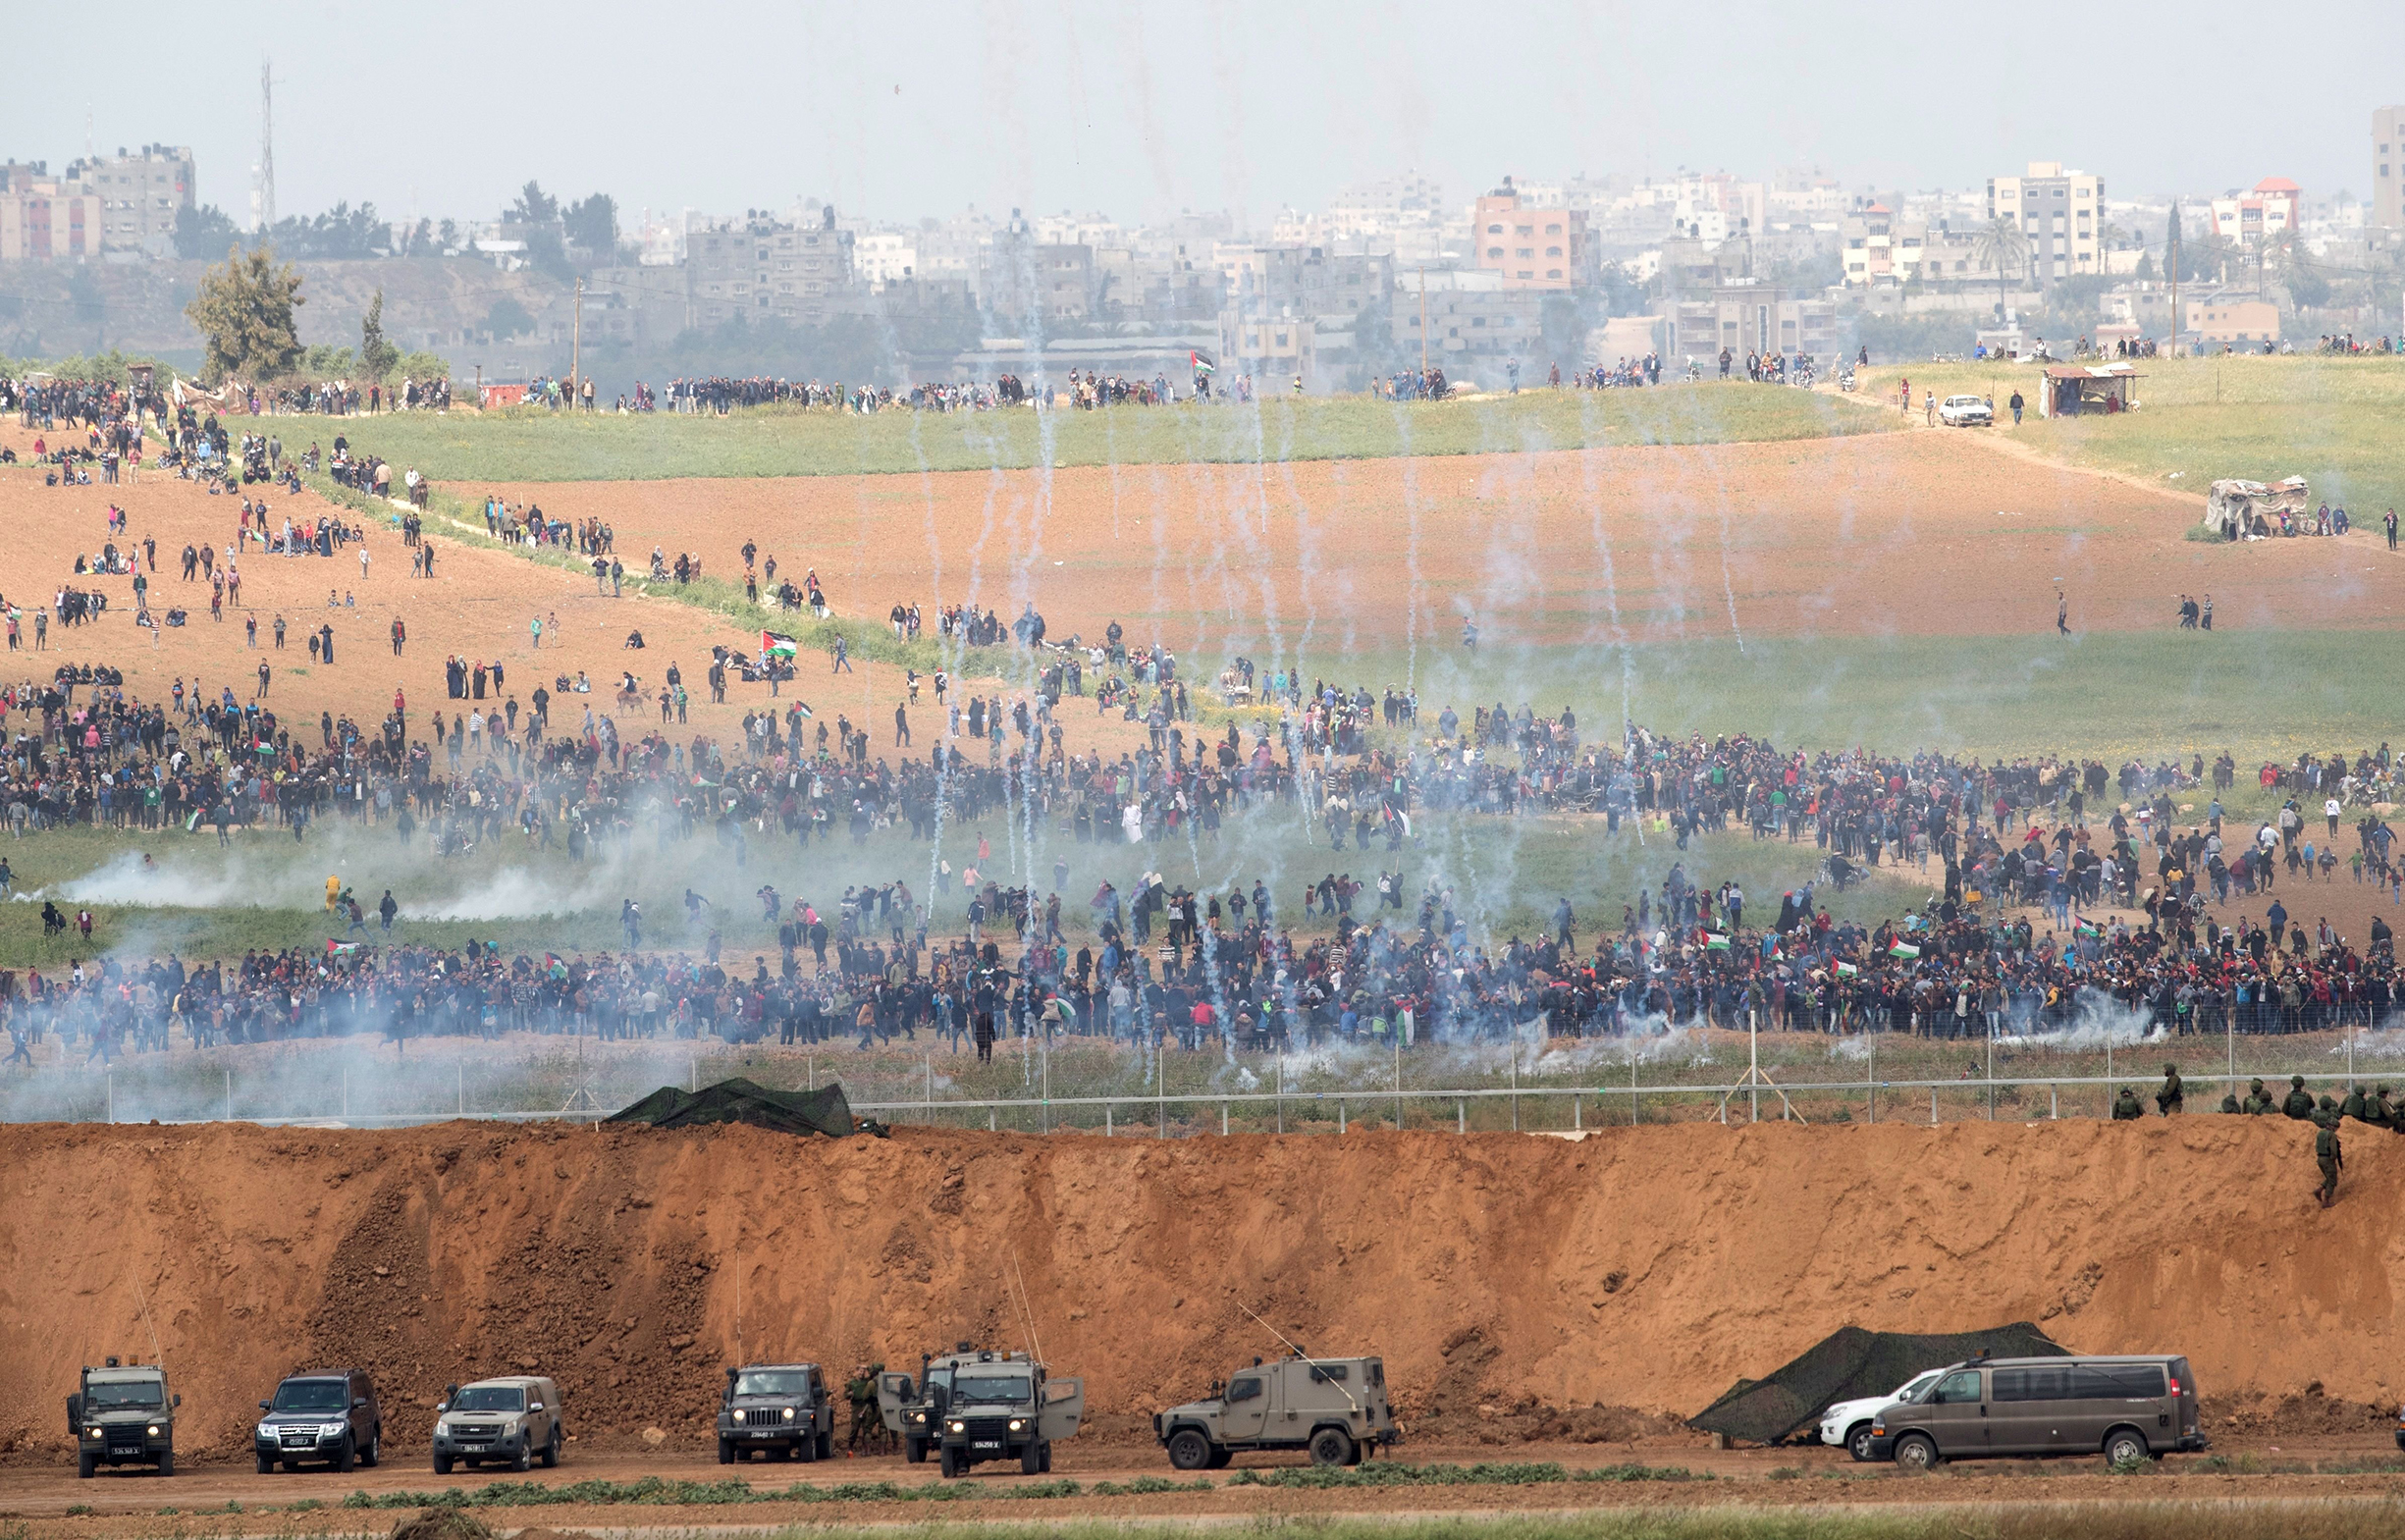 Israeli troops fire tear gas at Palestinian protesters on March 30